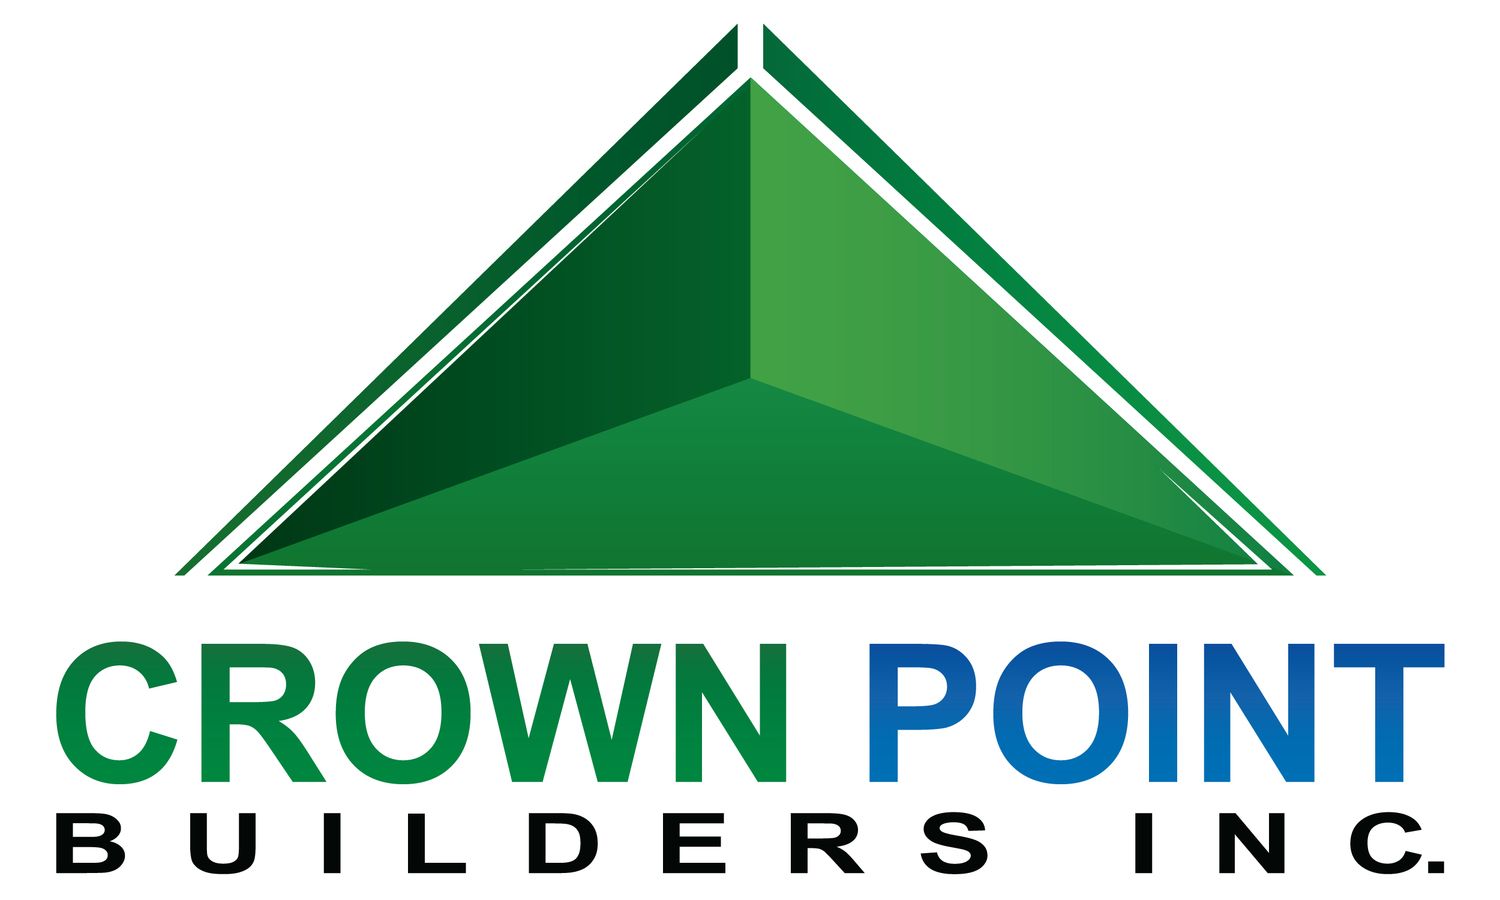 Crown Point Builders, Inc.